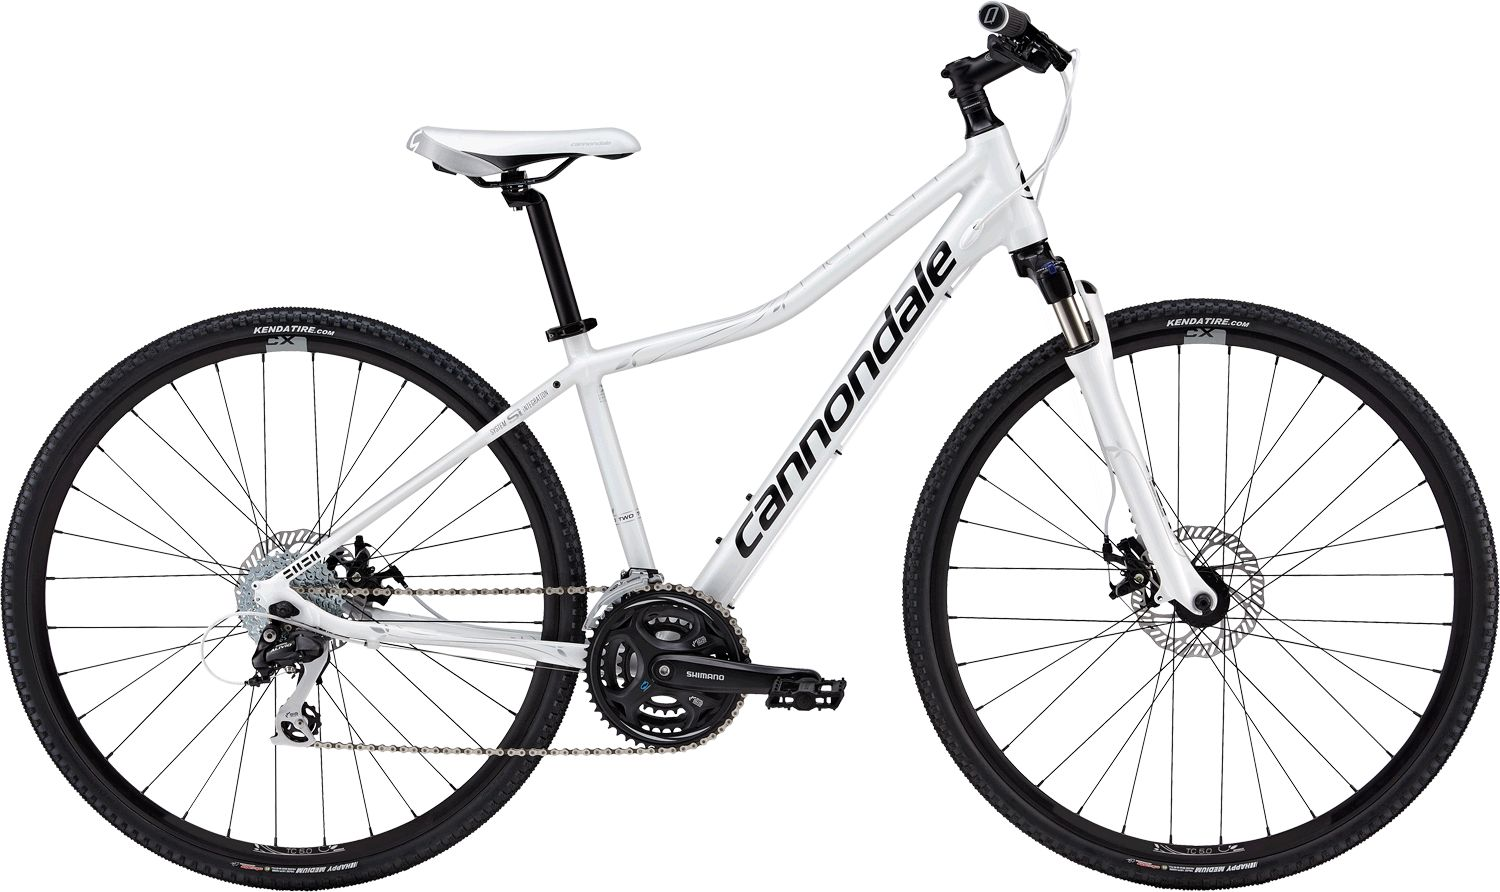 0551bc19863 Cannondale ALTHEA 2 2013 review - The Bike List